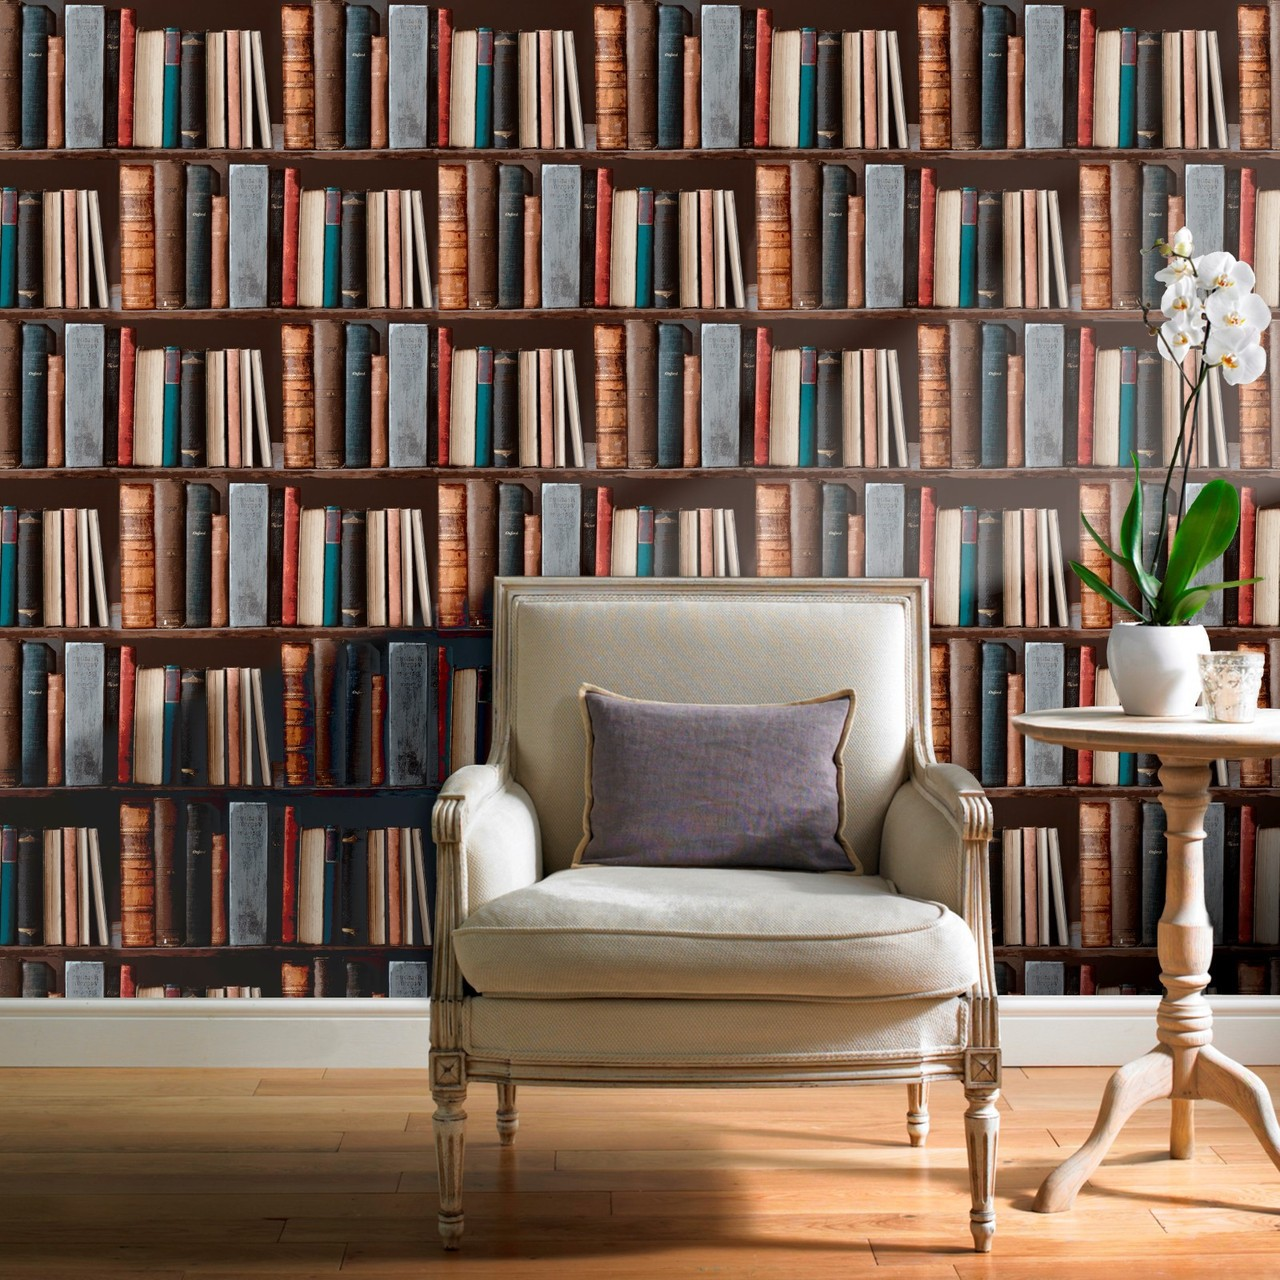 Bookshelf Wallpaper Loading zoom 1280x1280